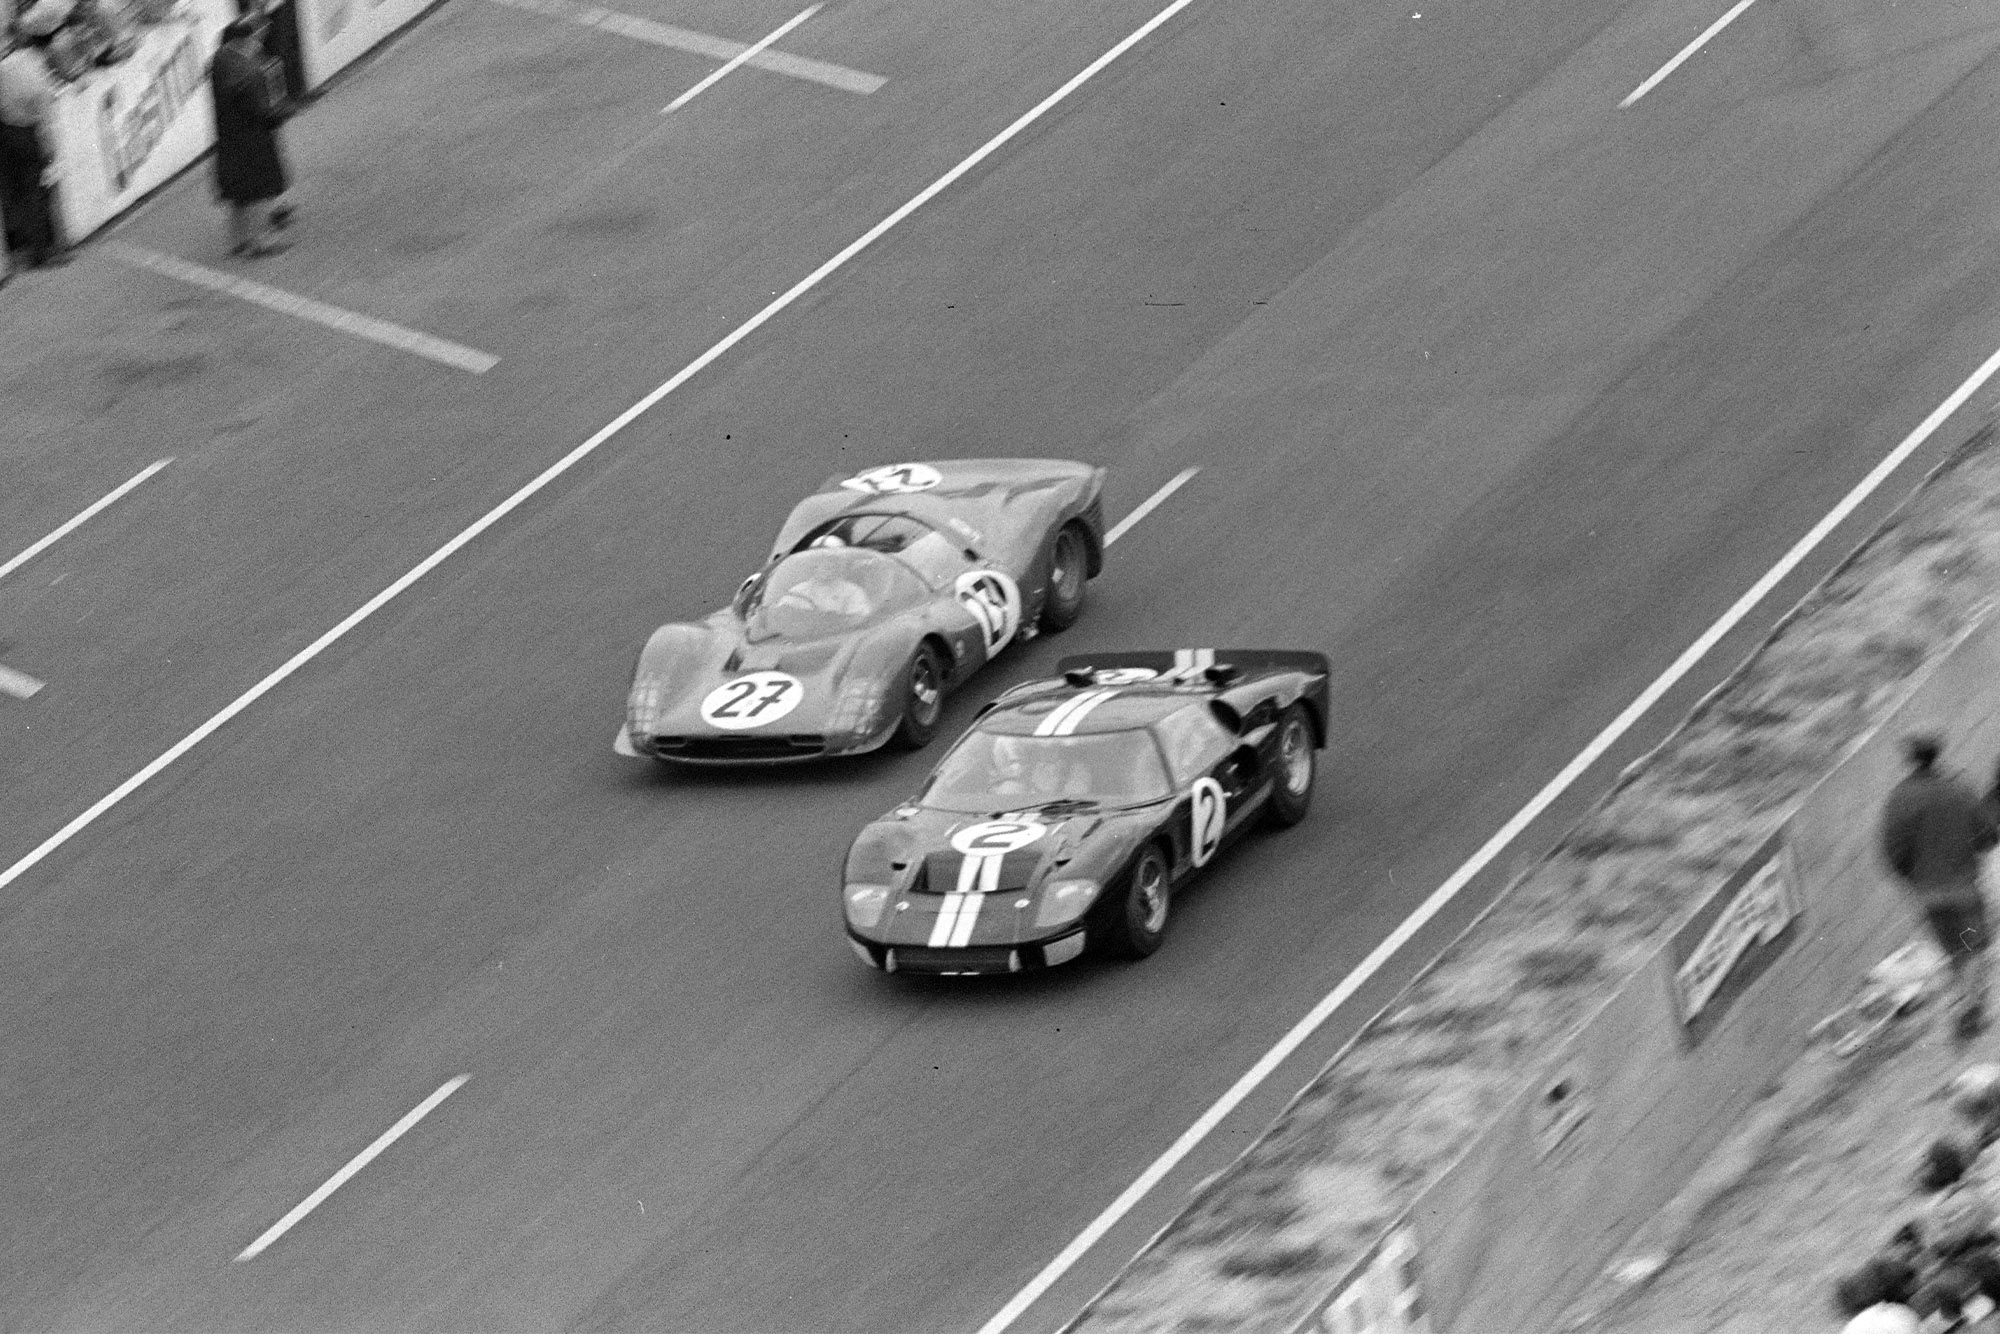 Ford vs Ferrari: the real story of Le Mans '66 and Ken Miles